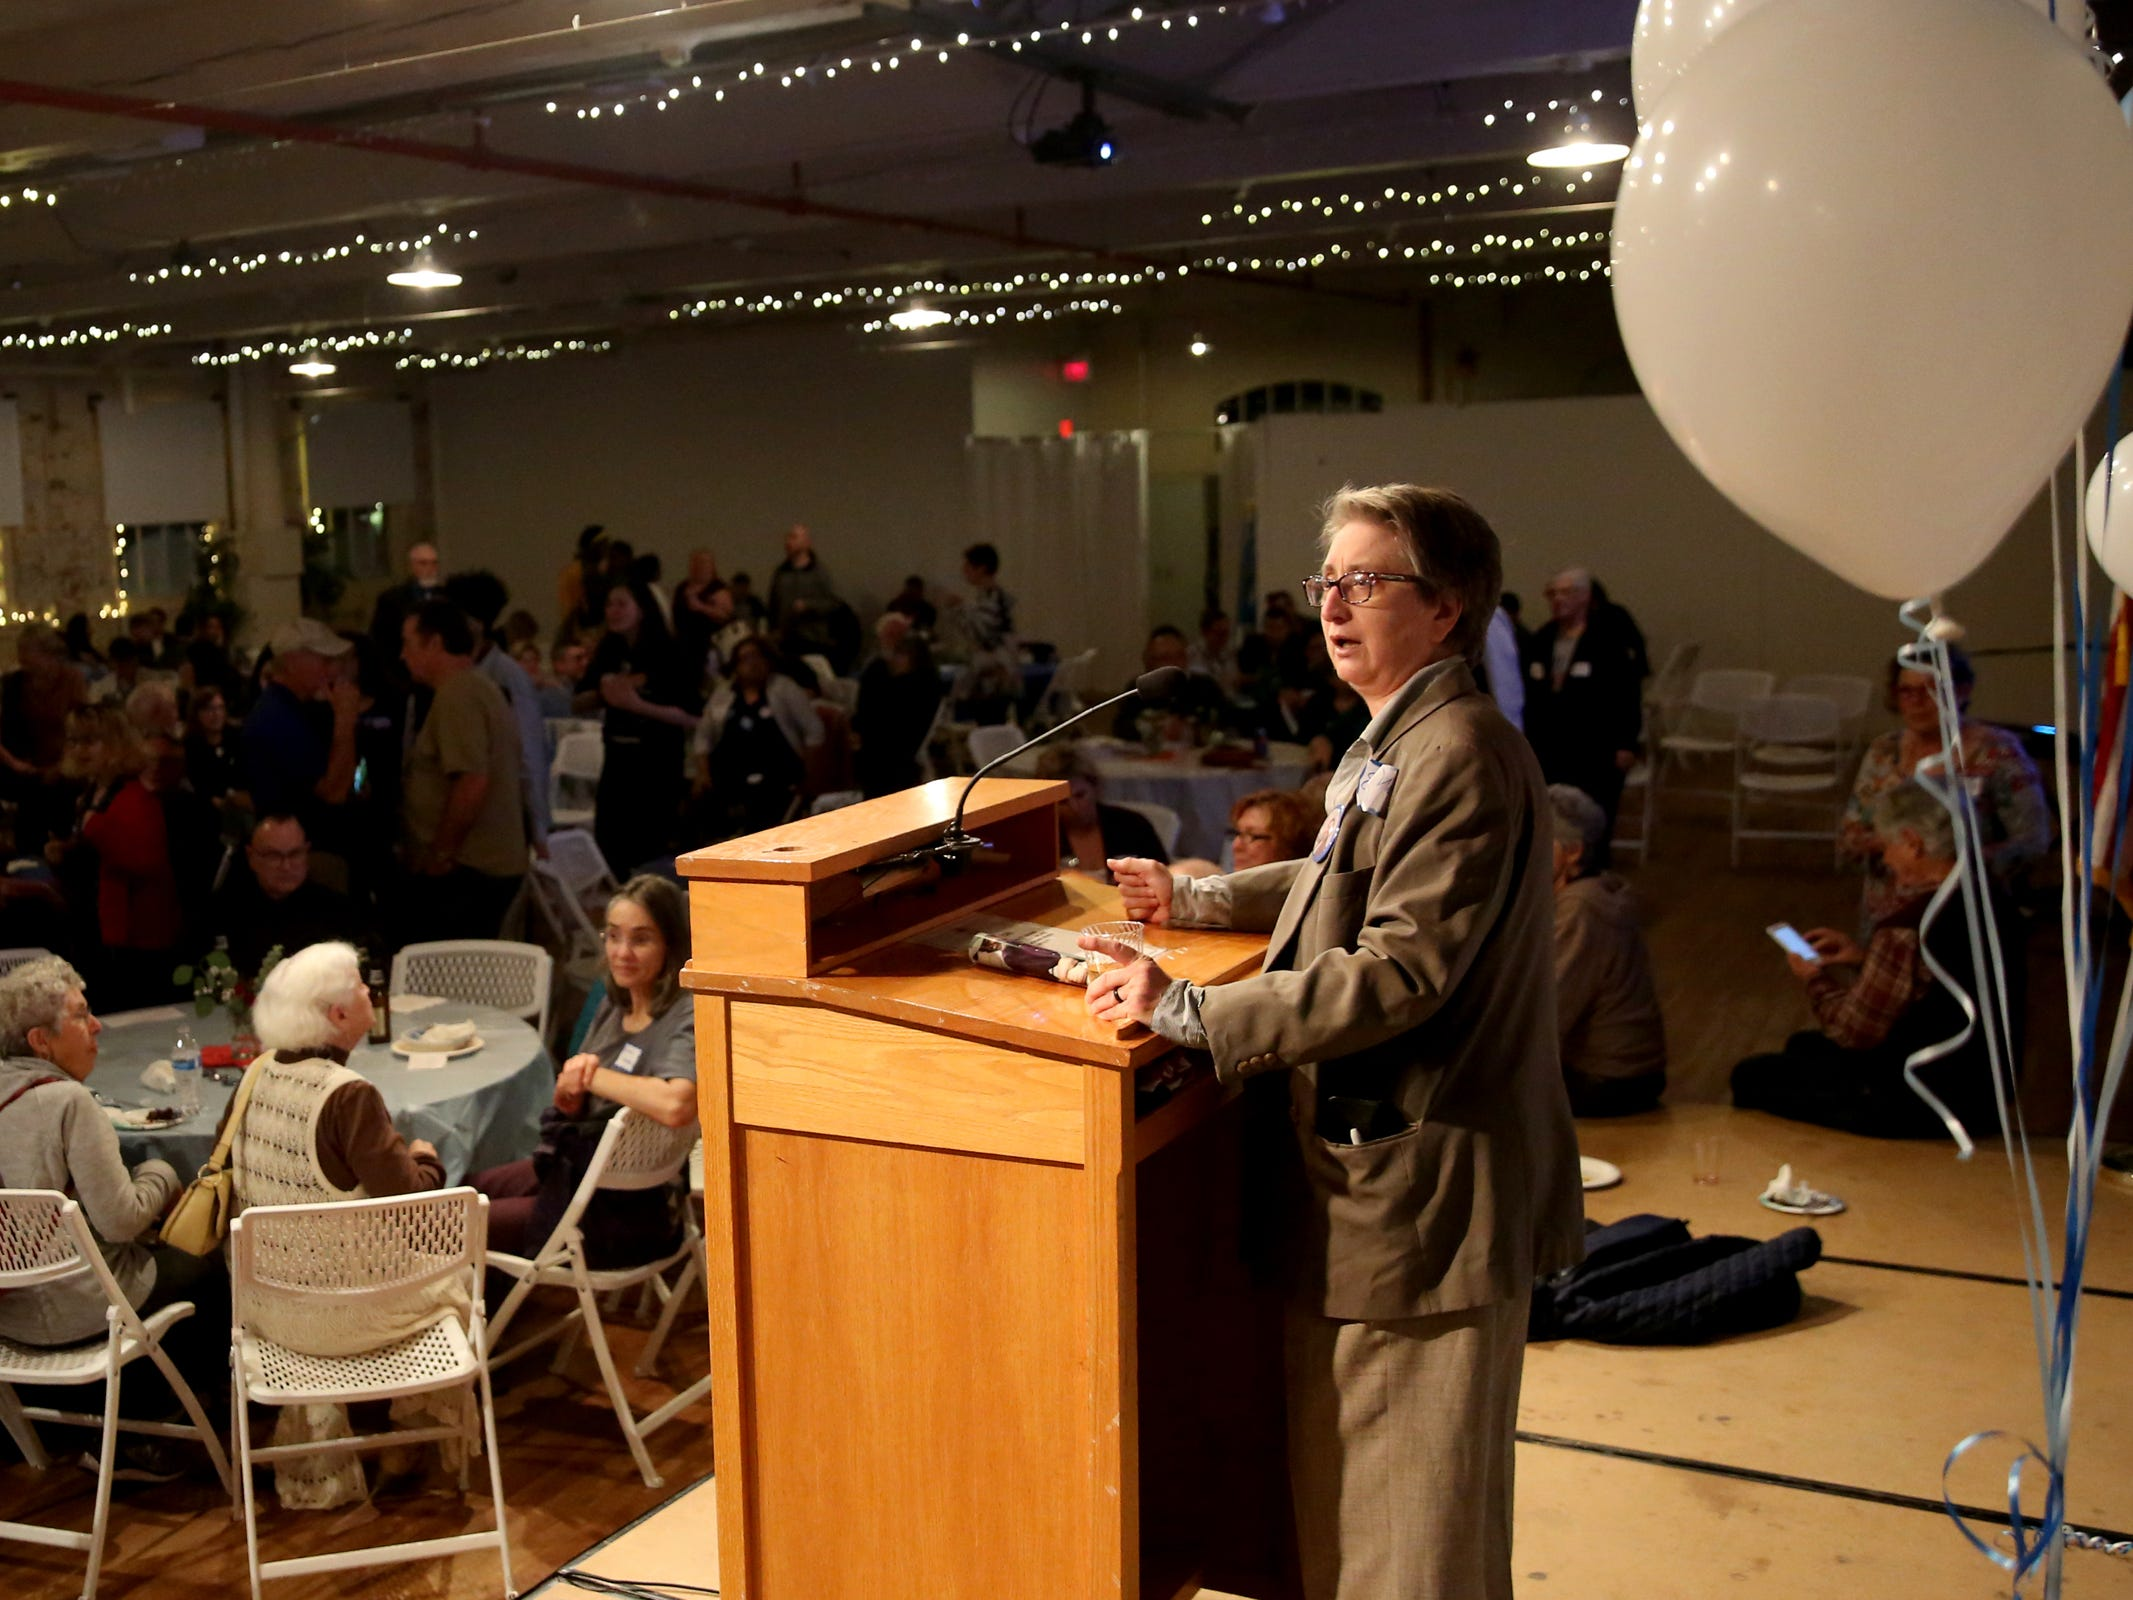 Susan Smith, the campaign manager for Shelaswau Crier, speaks during an election night party hosted by Marion County Democrats and Polk County Democrats at the Willamette Heritage Center in Salem on Tuesday, Nov. 6, 2018.